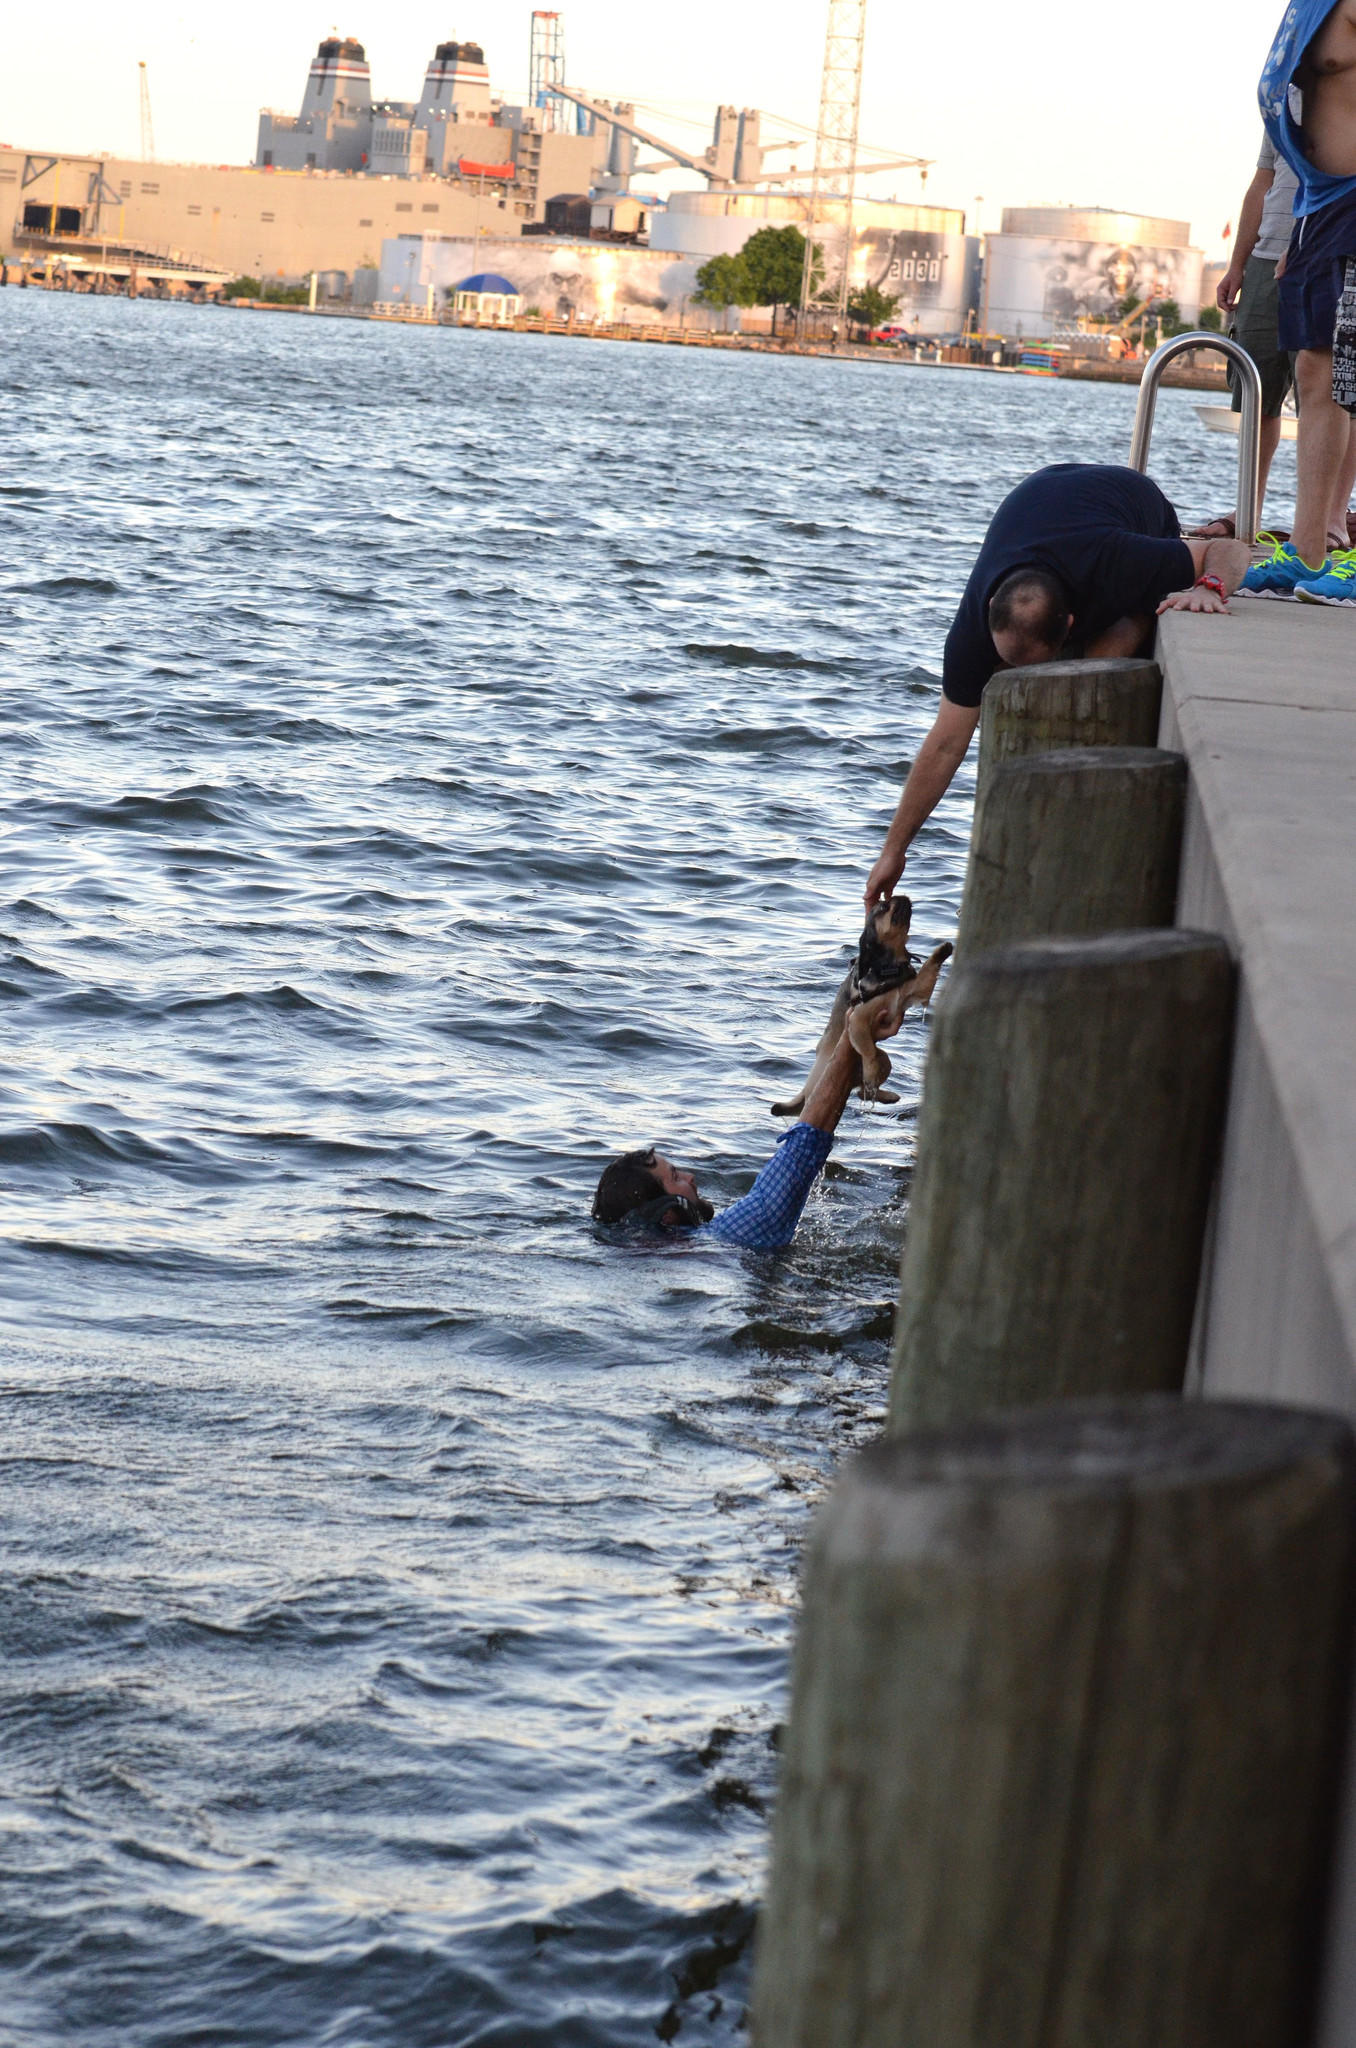 Matt Corasanti lifts a puppy to its owners after he exited his kayak to help rescue the dog from the water along Canton.